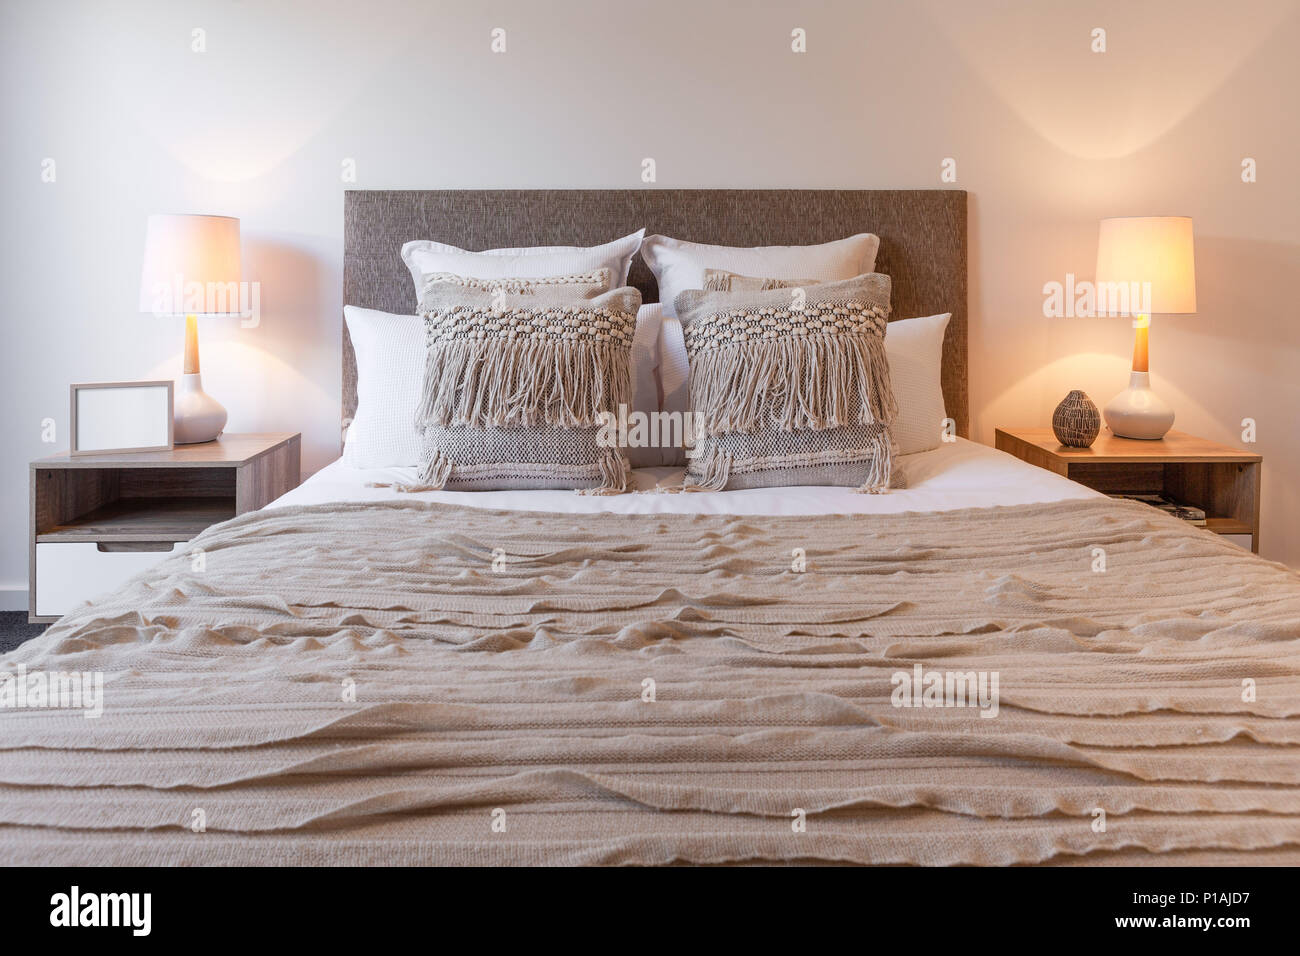 Decorative Pillows On Bed Arrangement With Bedroom Lamps And Bedside Tables